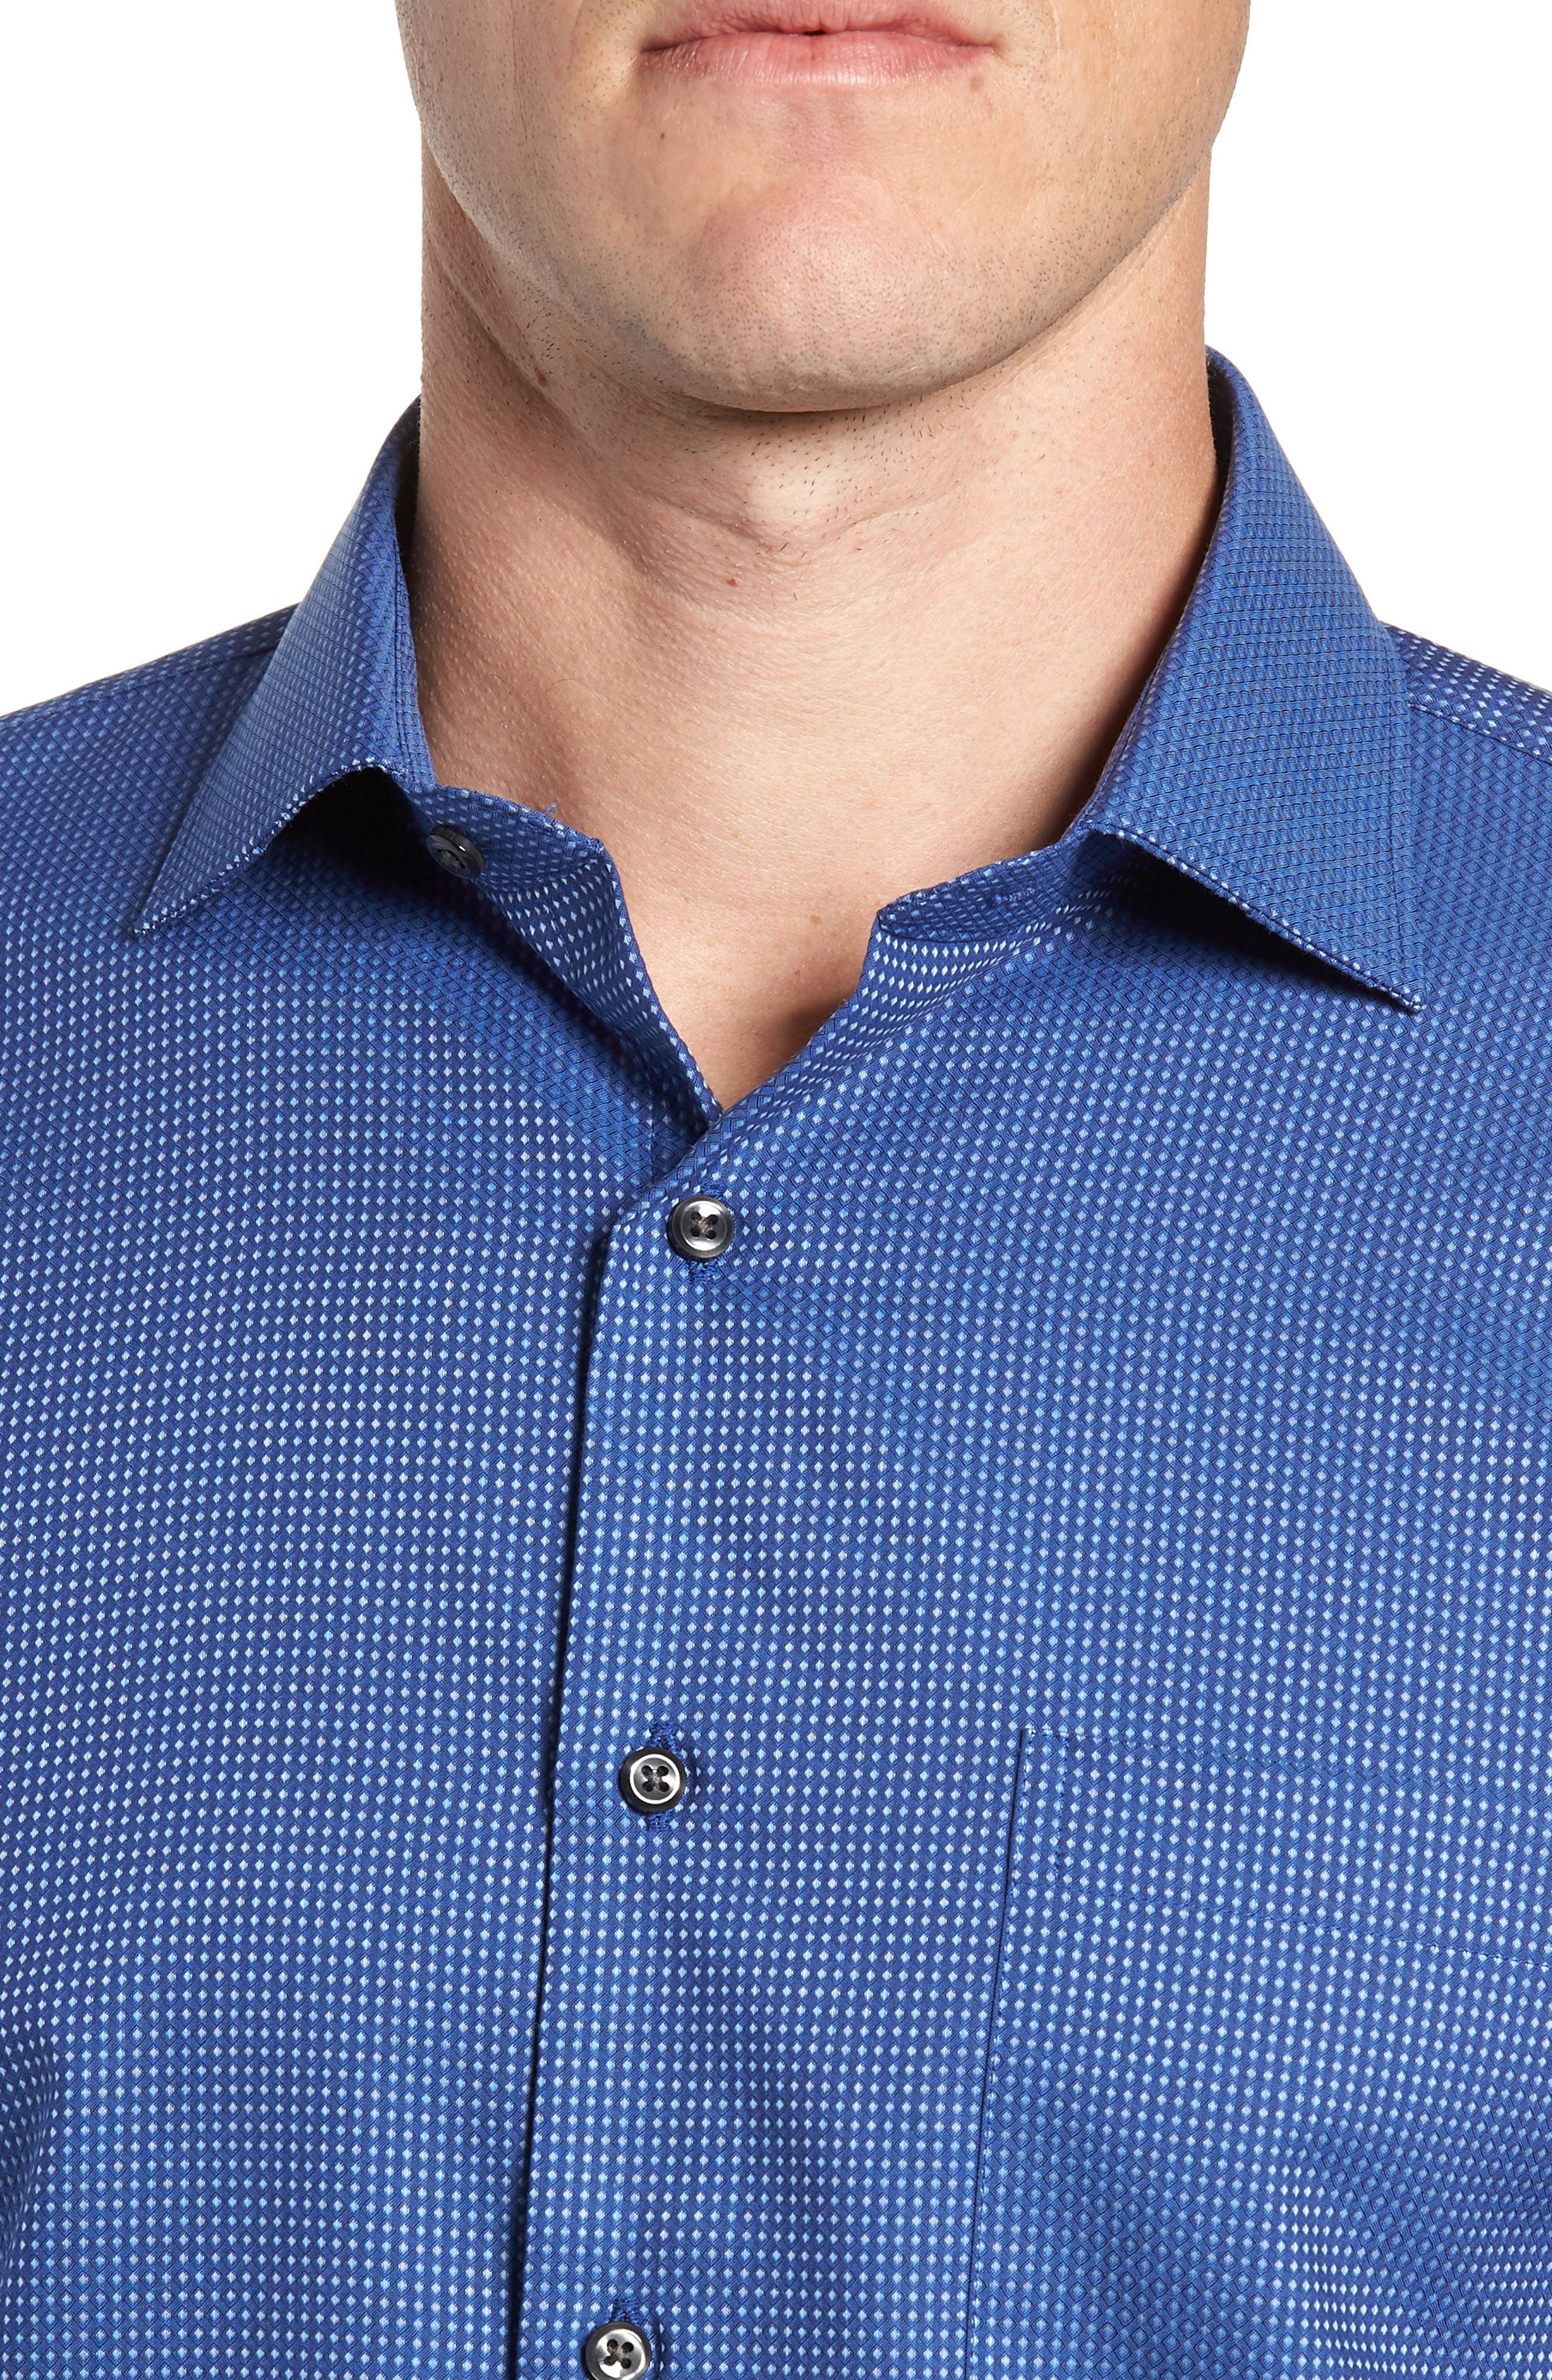 Trim Fit Non-Iron Dot Dress Shirt,                             Alternate thumbnail 2, color,                             BLUE SODALITE